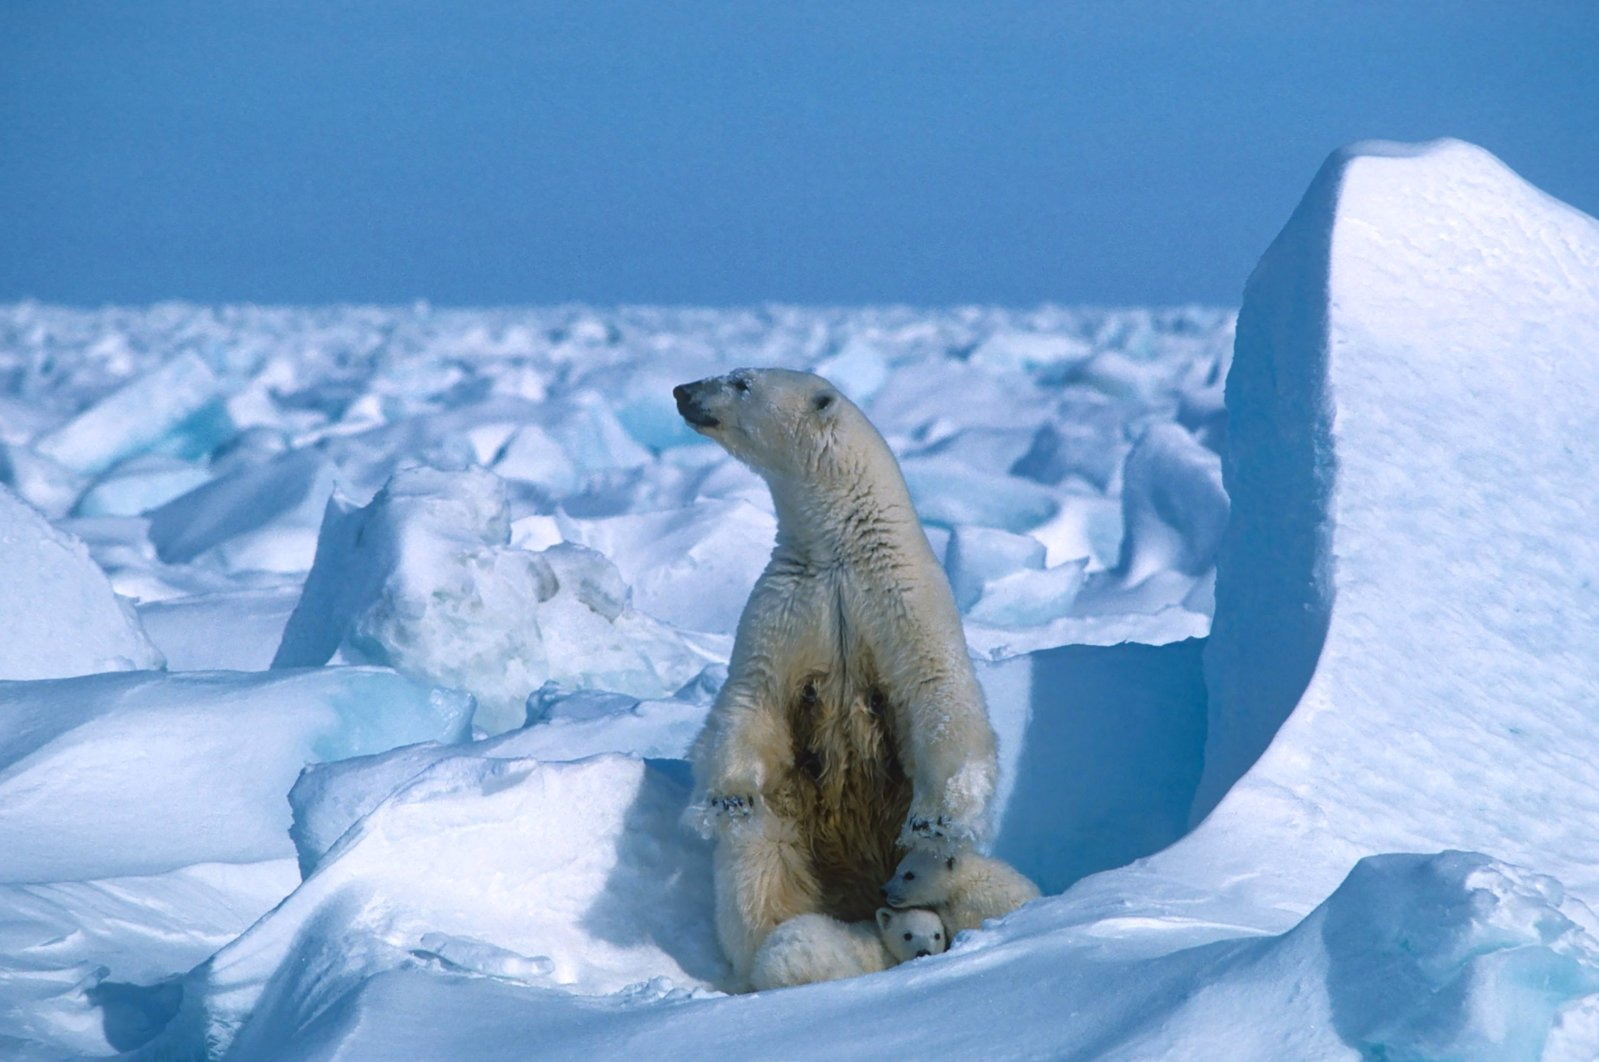 A polar bear with its cubs sits in the sea ice, northeast of Prudhoe Bay in Alaska, U.S., in 1985, in this file handout photo made available on July 17, 2020. (Photo by Steven C. Amstrup/Polar Bears International via AFP)